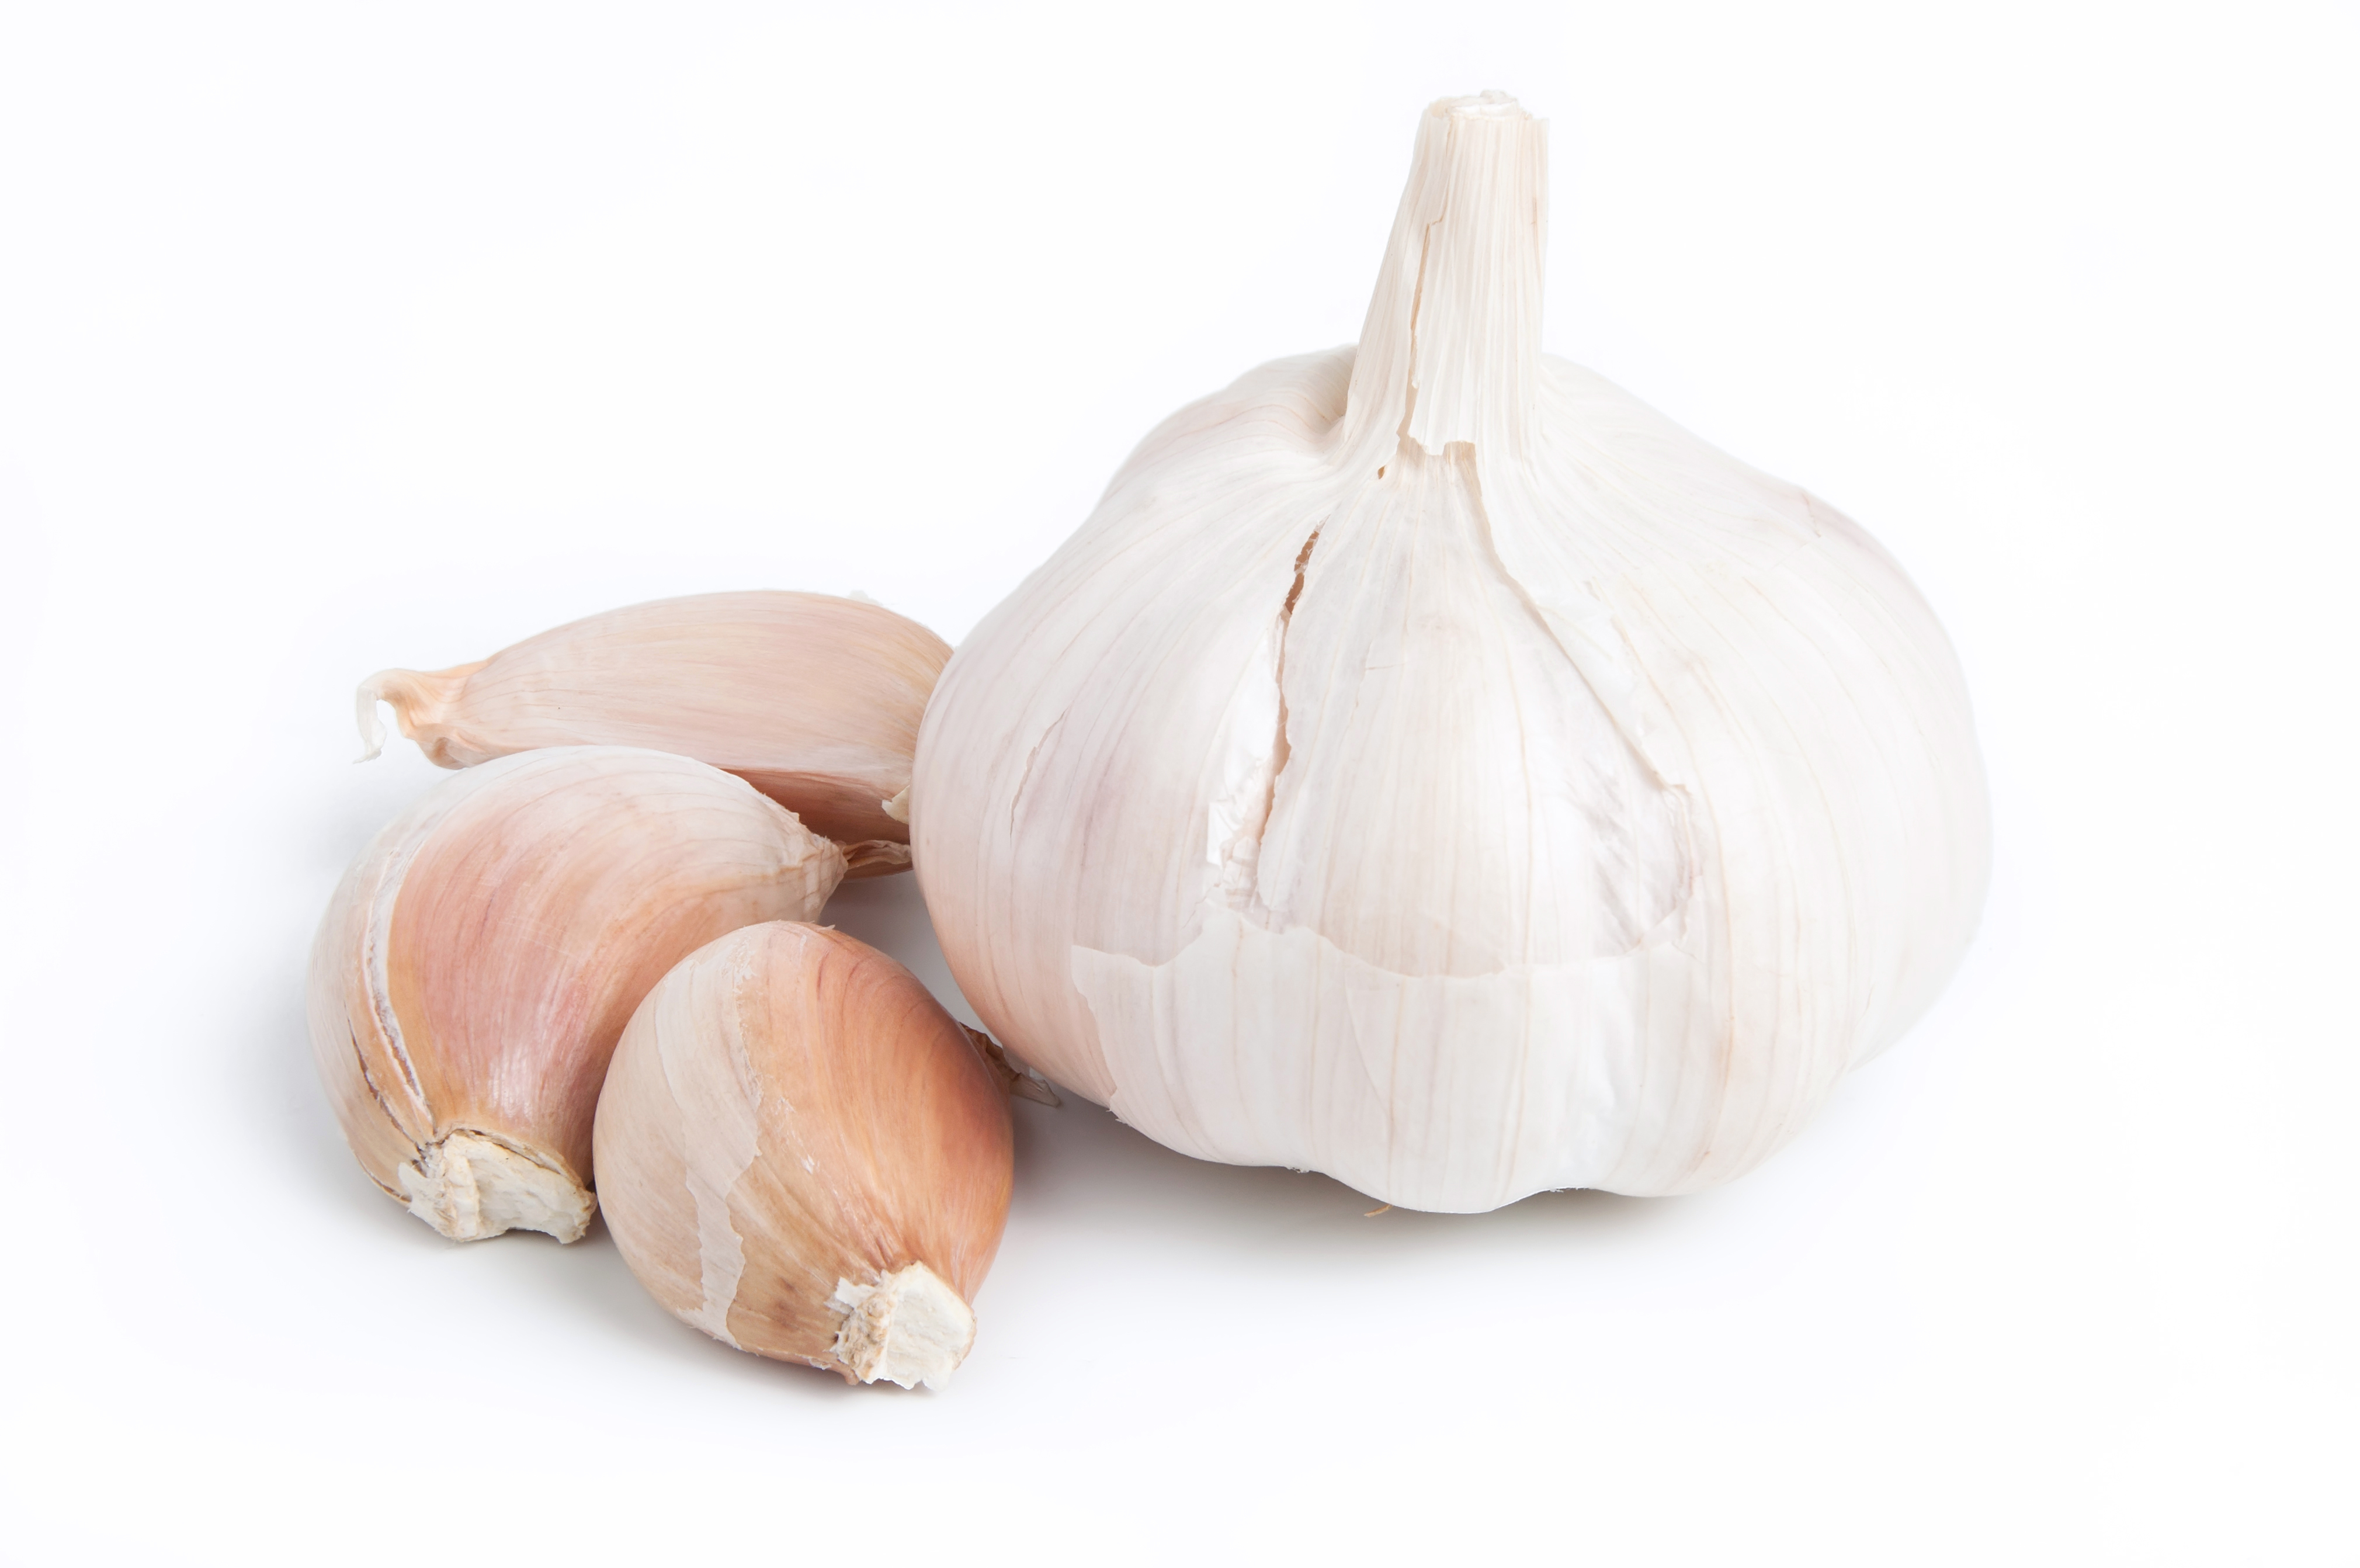 The quickest (and only) way to get rid of garlic breath